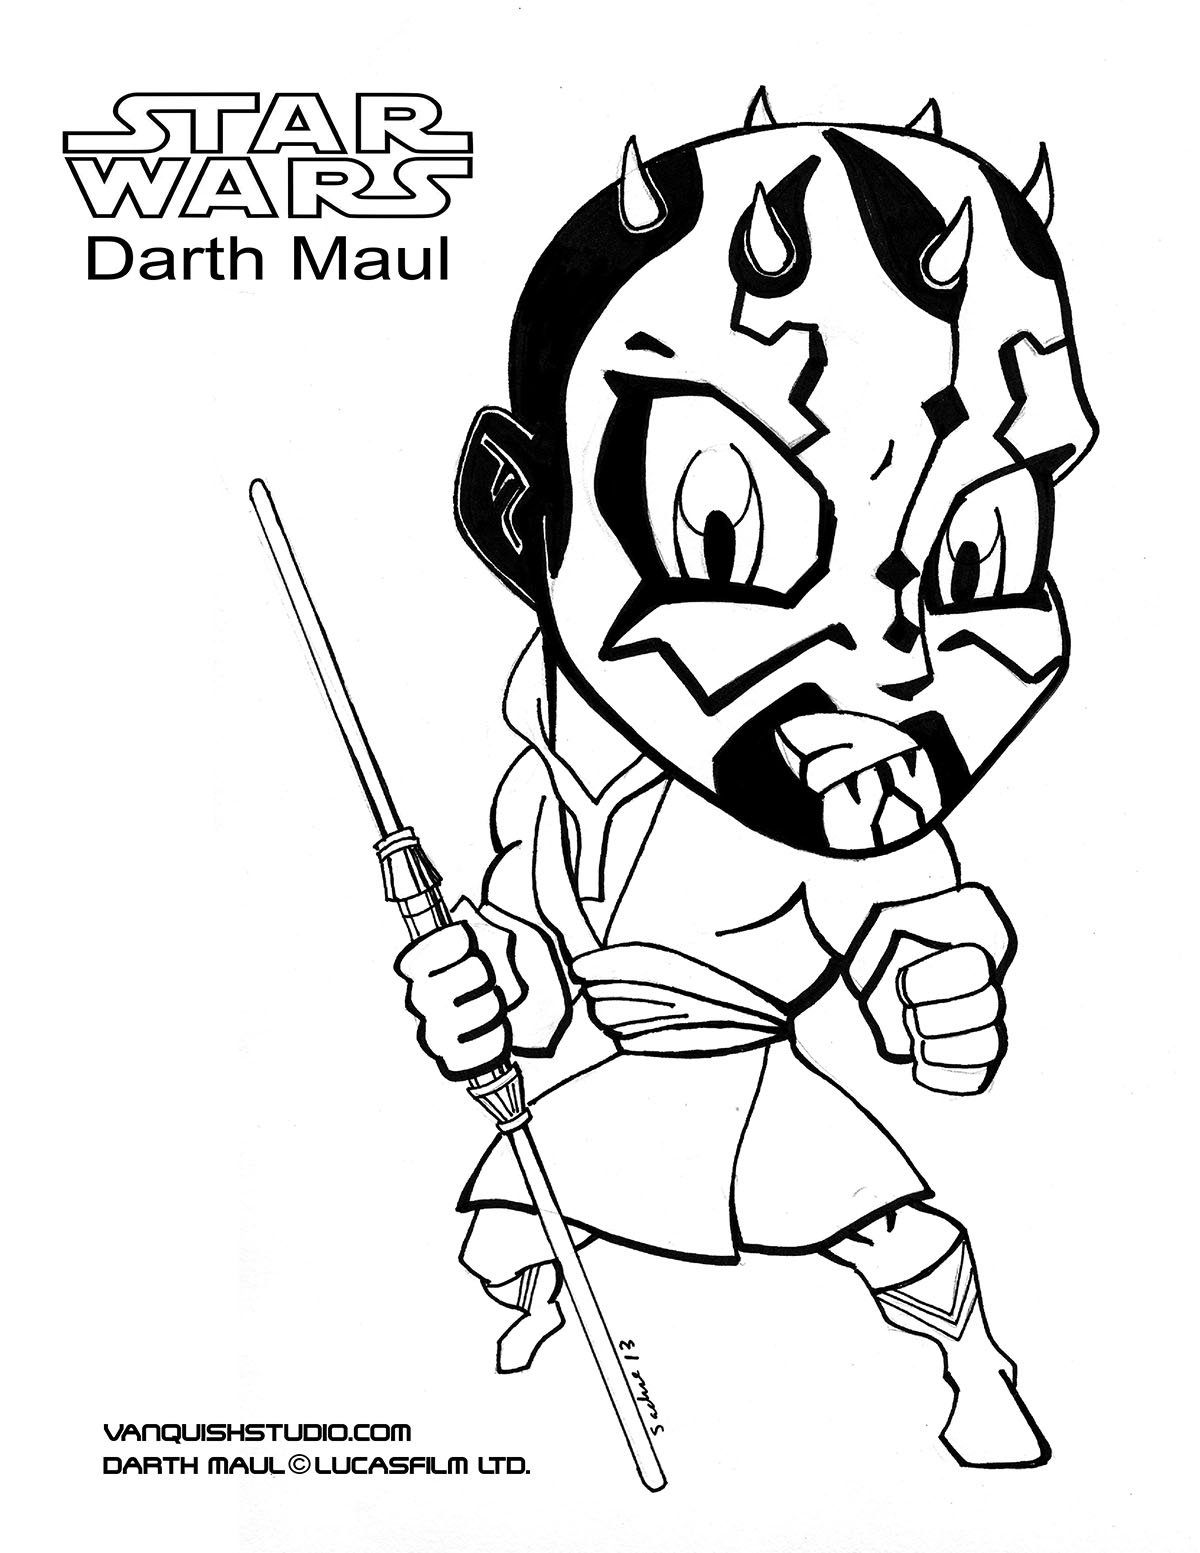 darth maul coloring pages - HD1200×1553